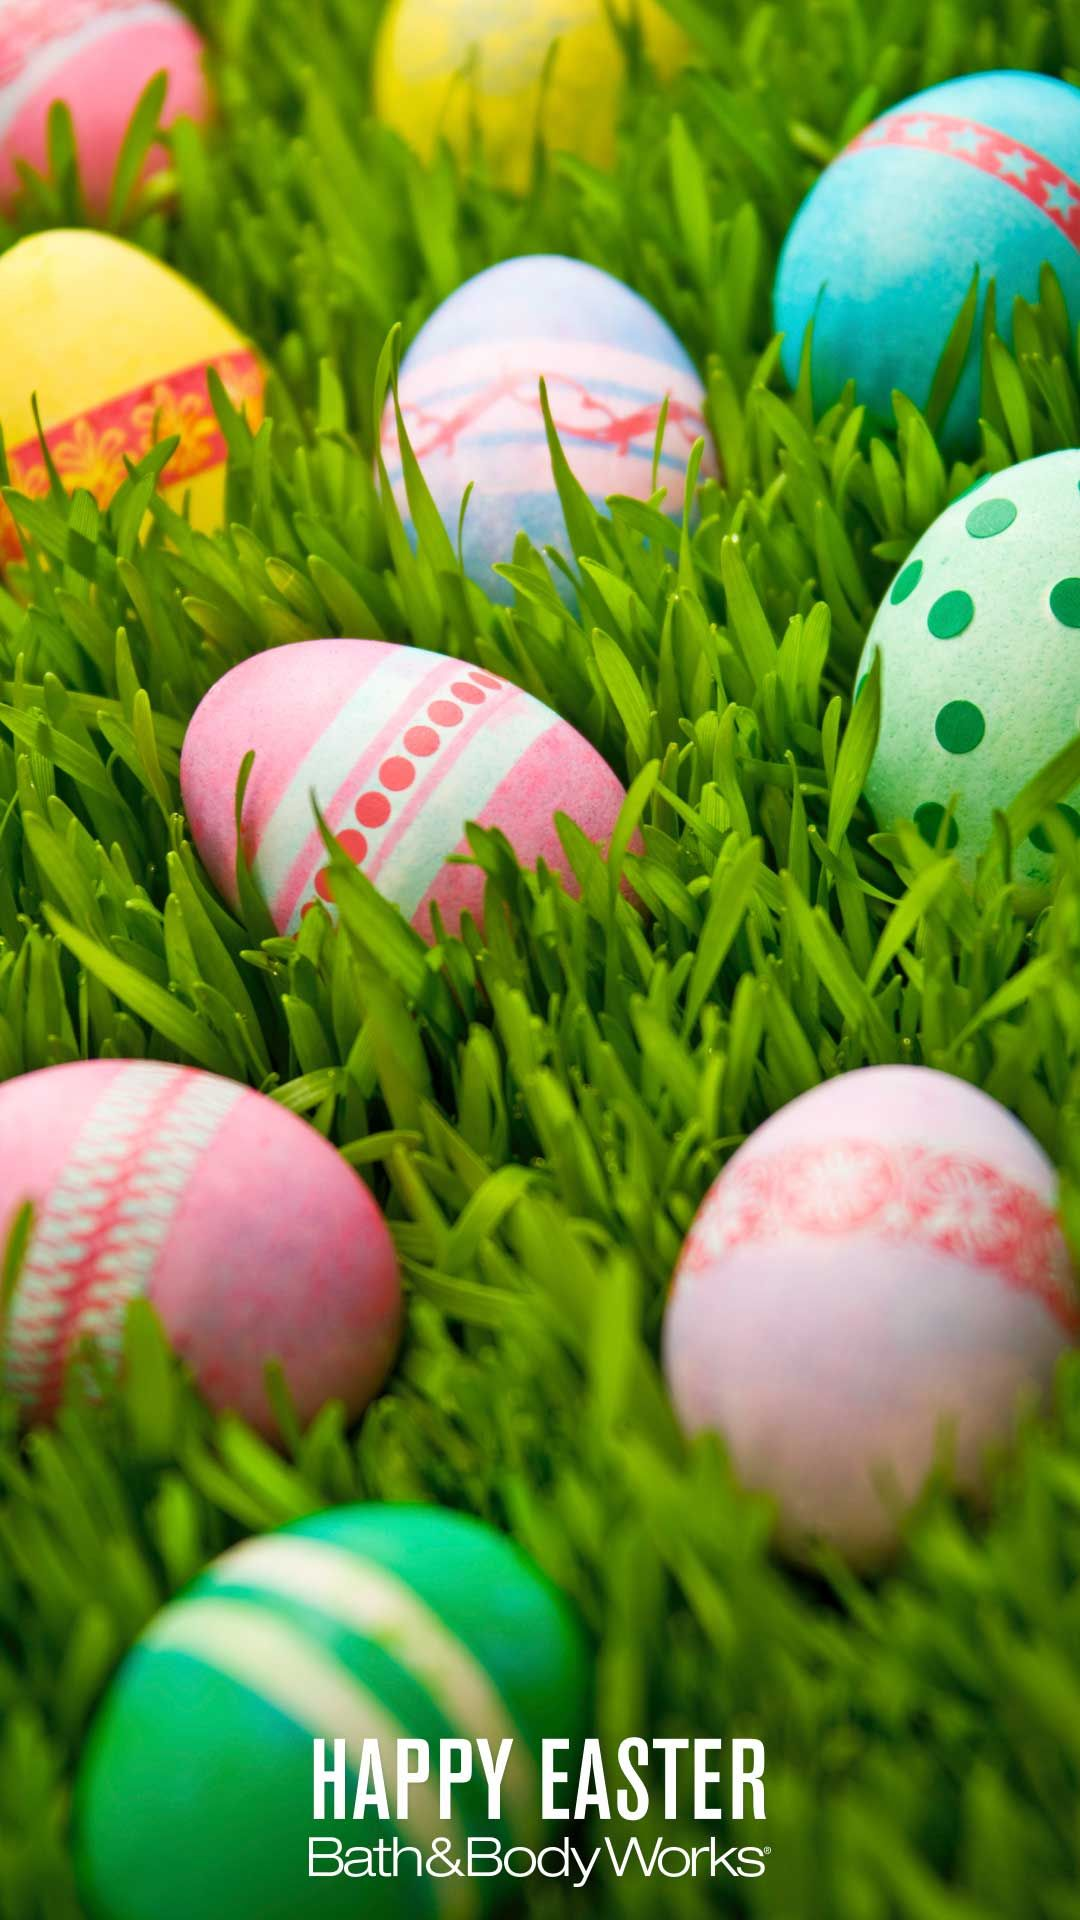 Easter Egg Hunt iPhone Wallpaper Easter wallpaper